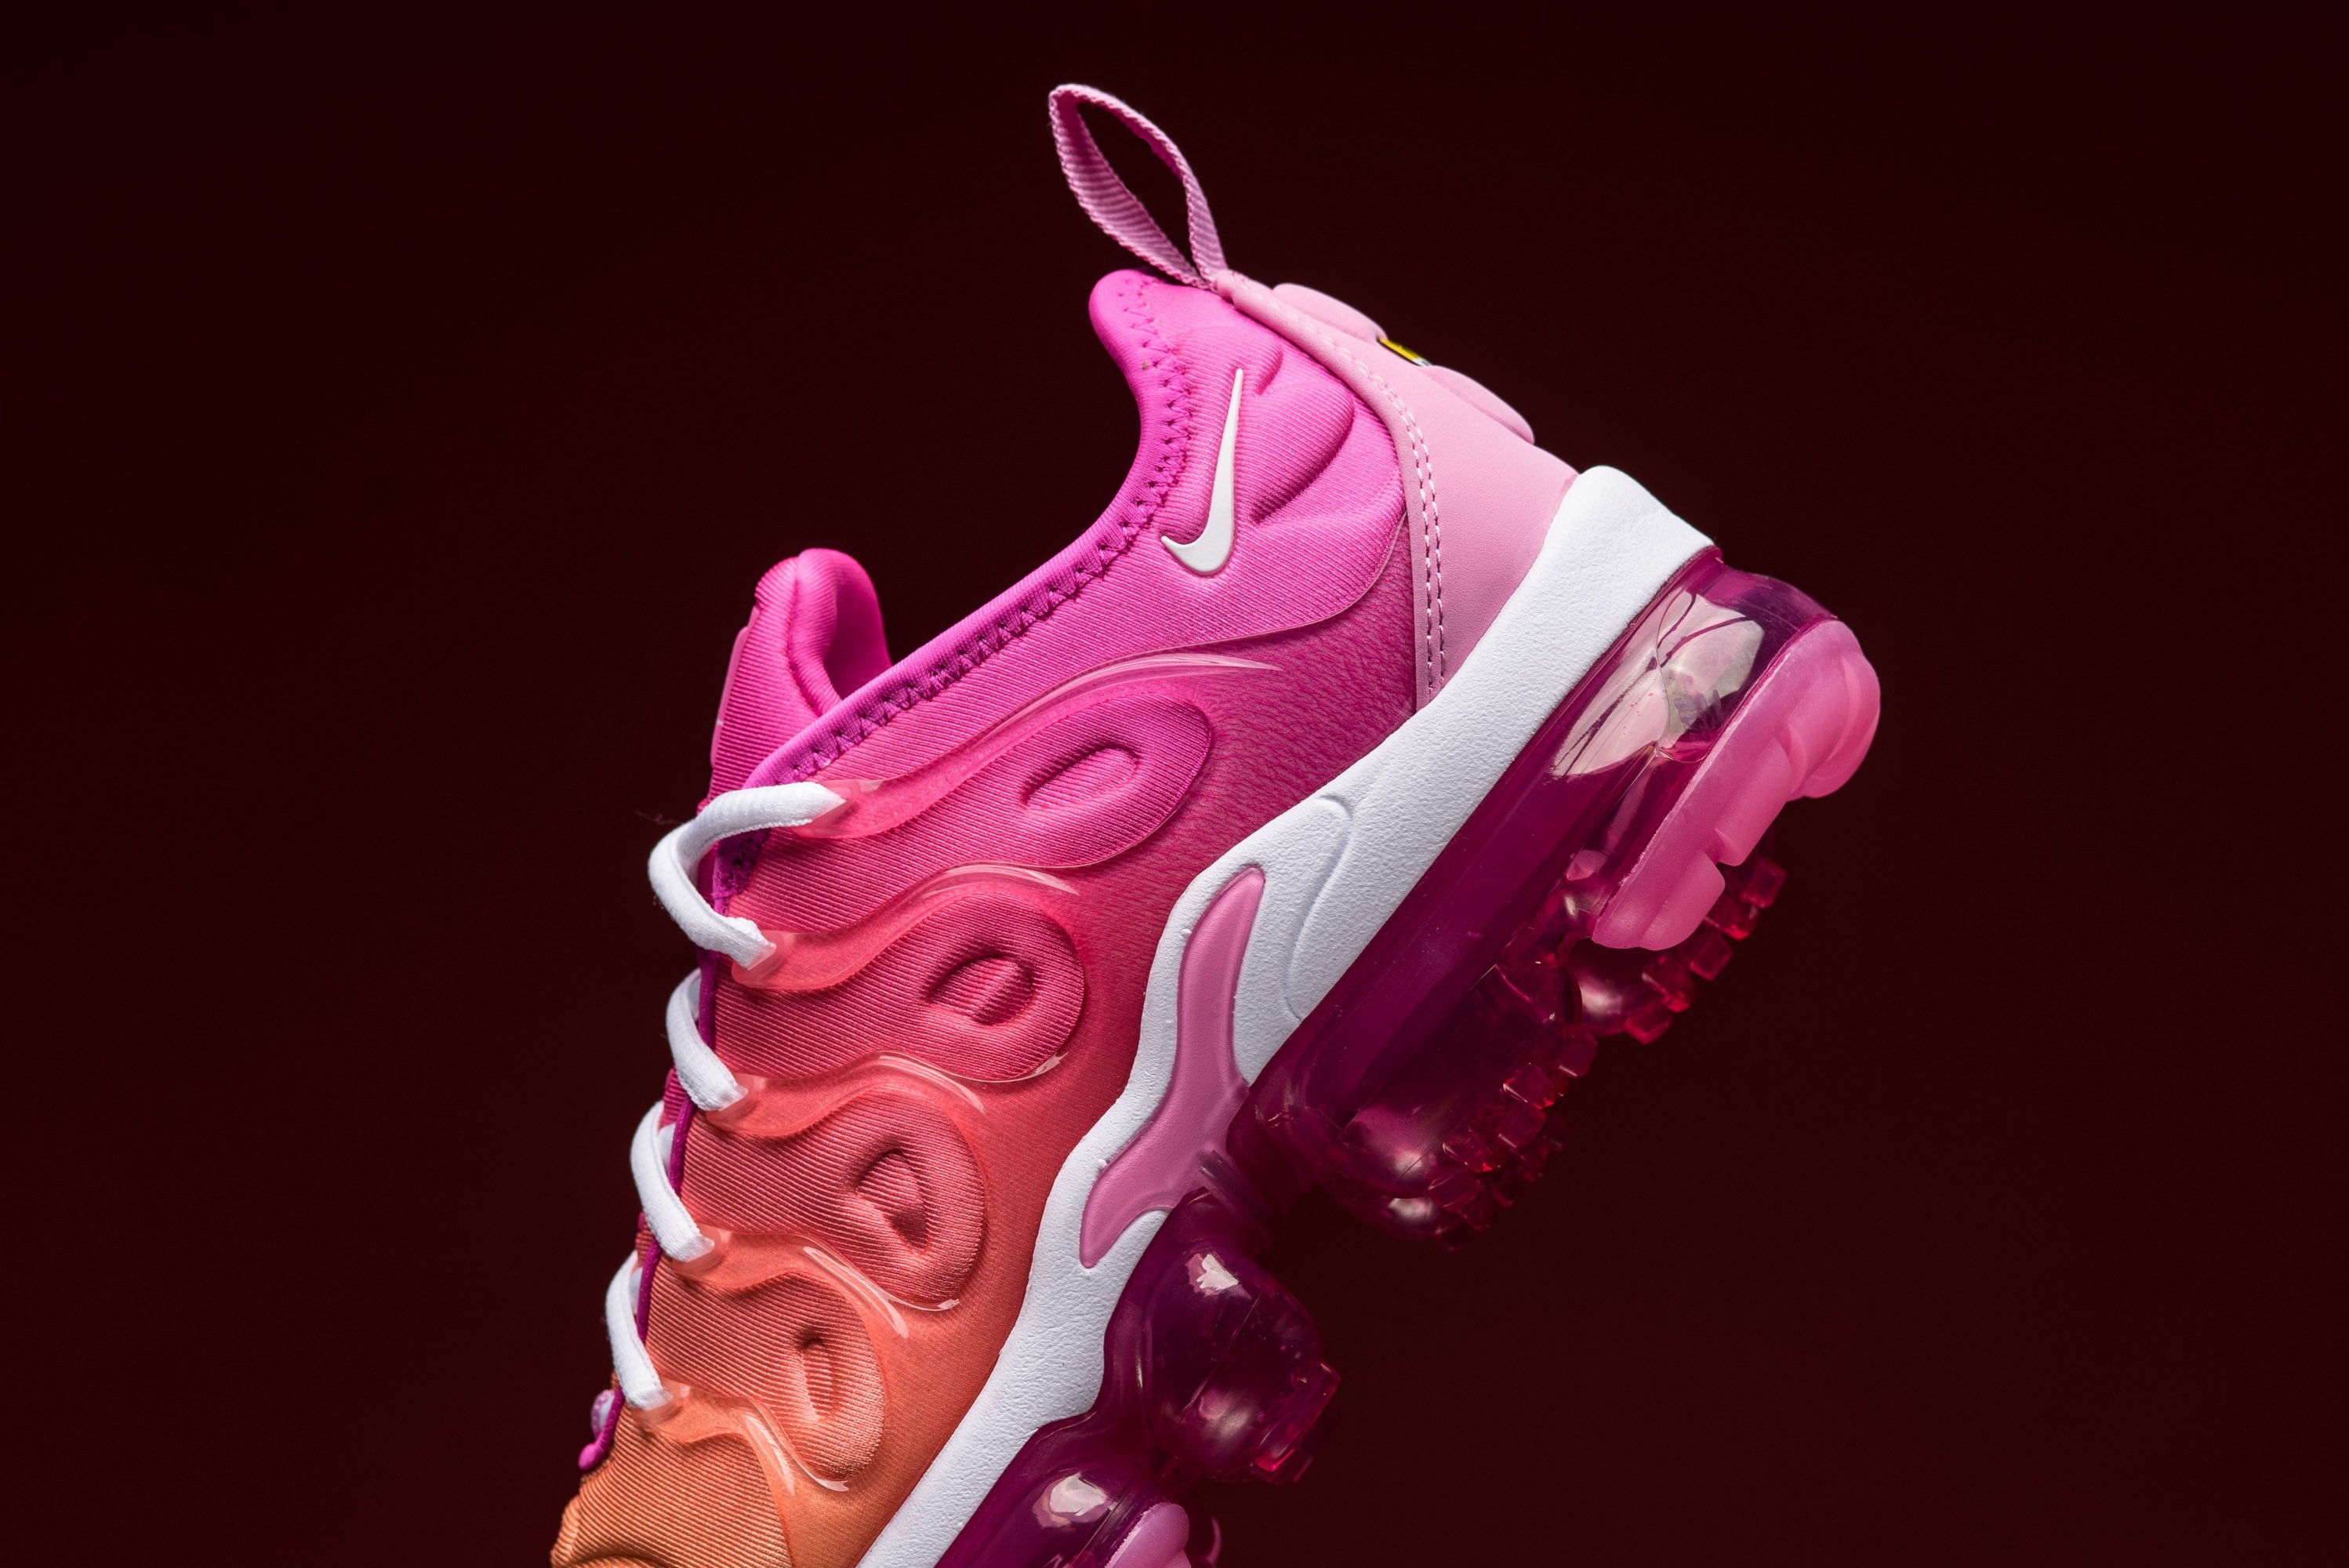 premium selection a76e1 d8590 Nike WMNS Air VaporMax Plus Laser Fuchsia Heats Up The ...